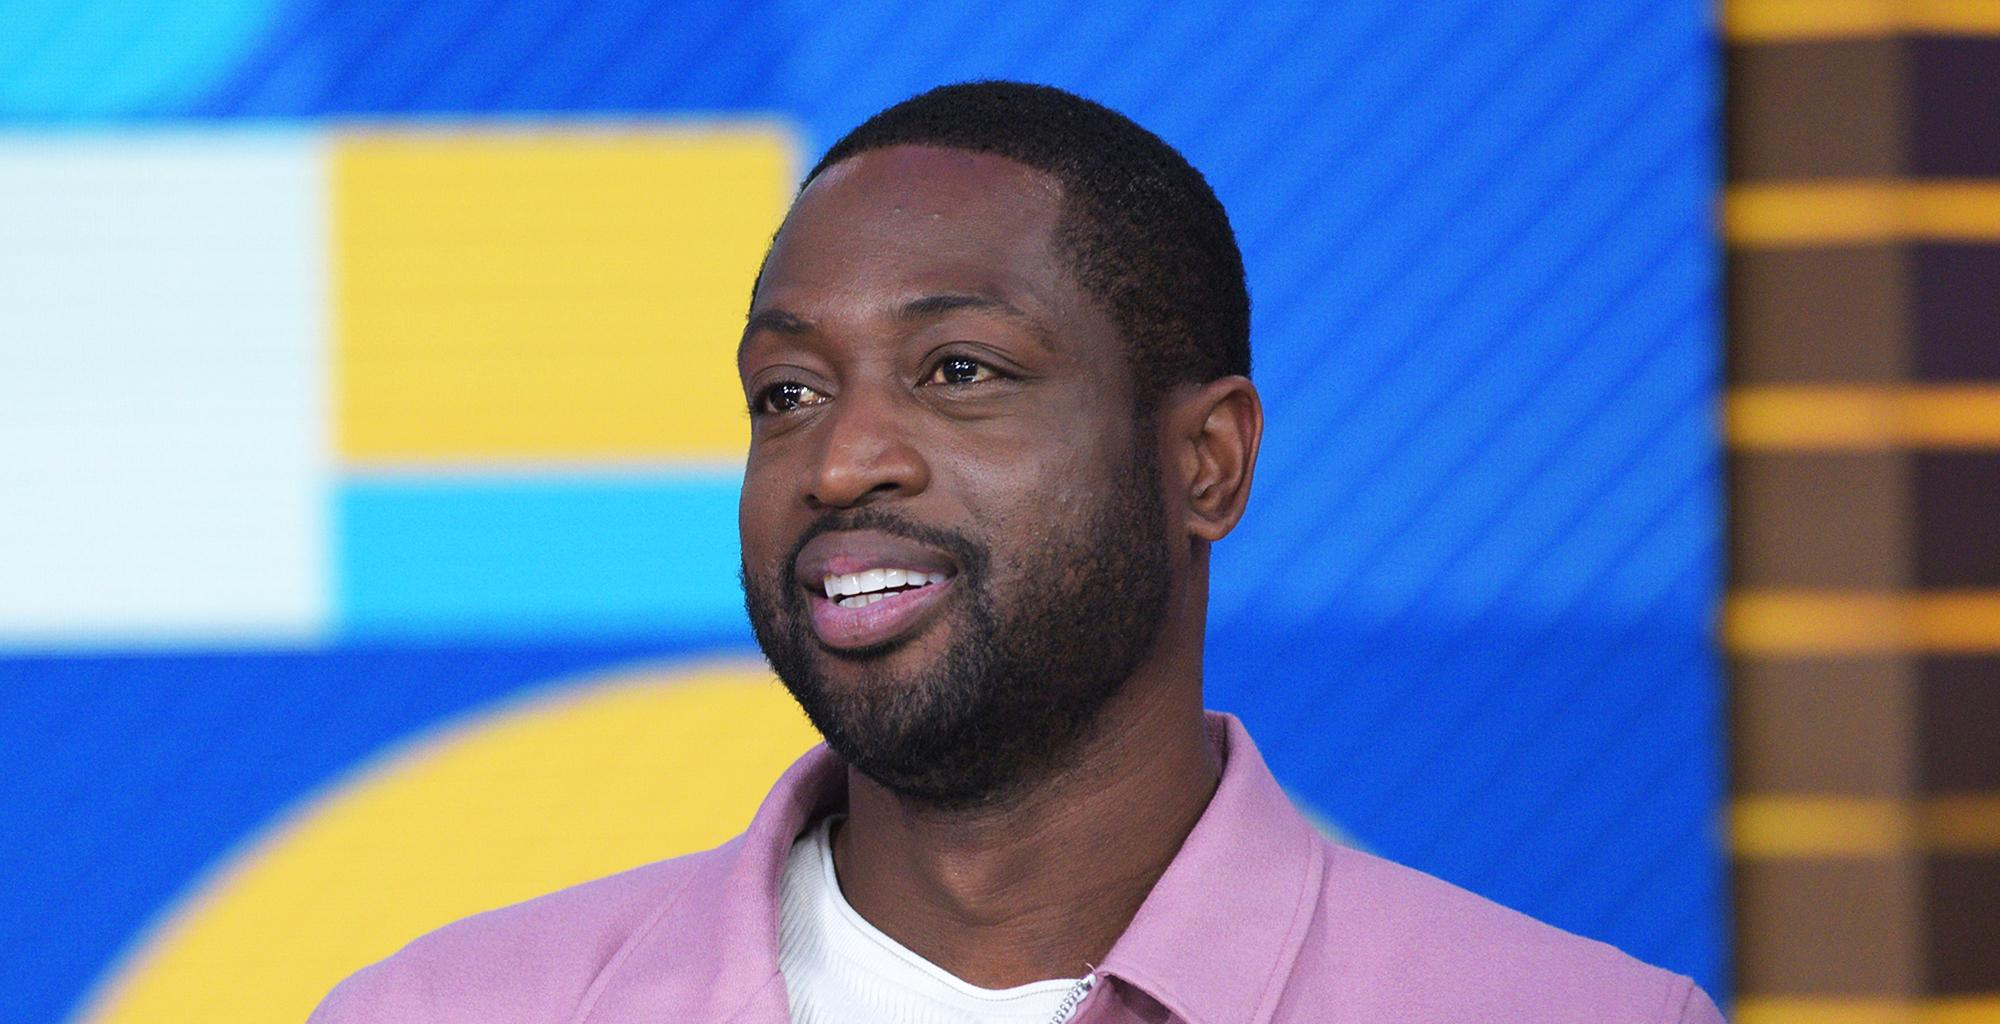 Dwyane Wade Learns About Gender Identities With His Daughter, Zaya And Calls Her 'Leader'